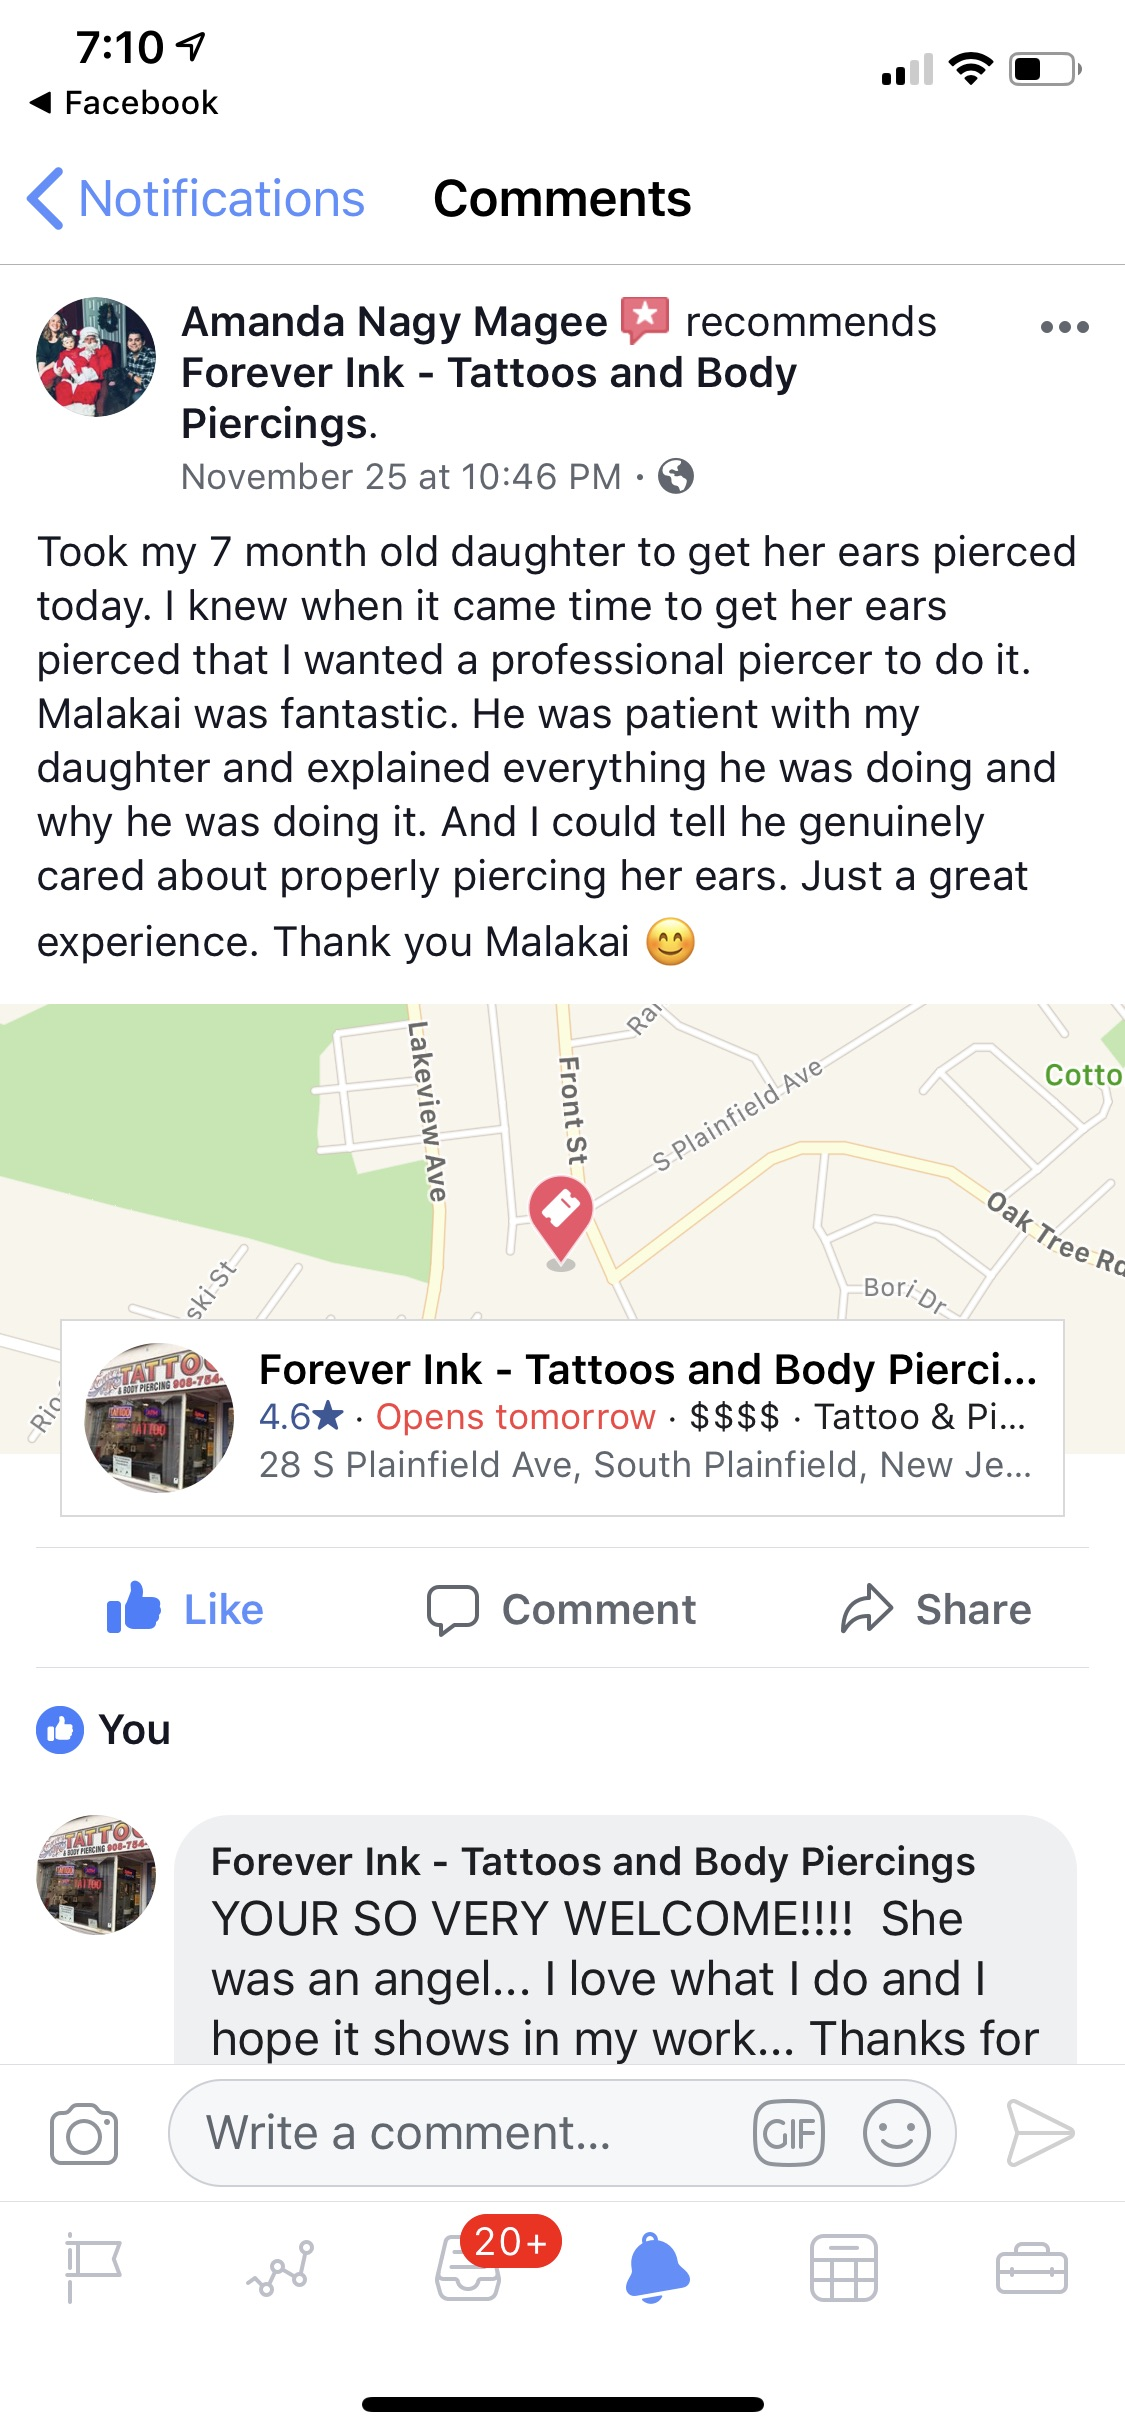 Infant & Child Piercings - Forever Inksanity - Tattoos & Body Piercings